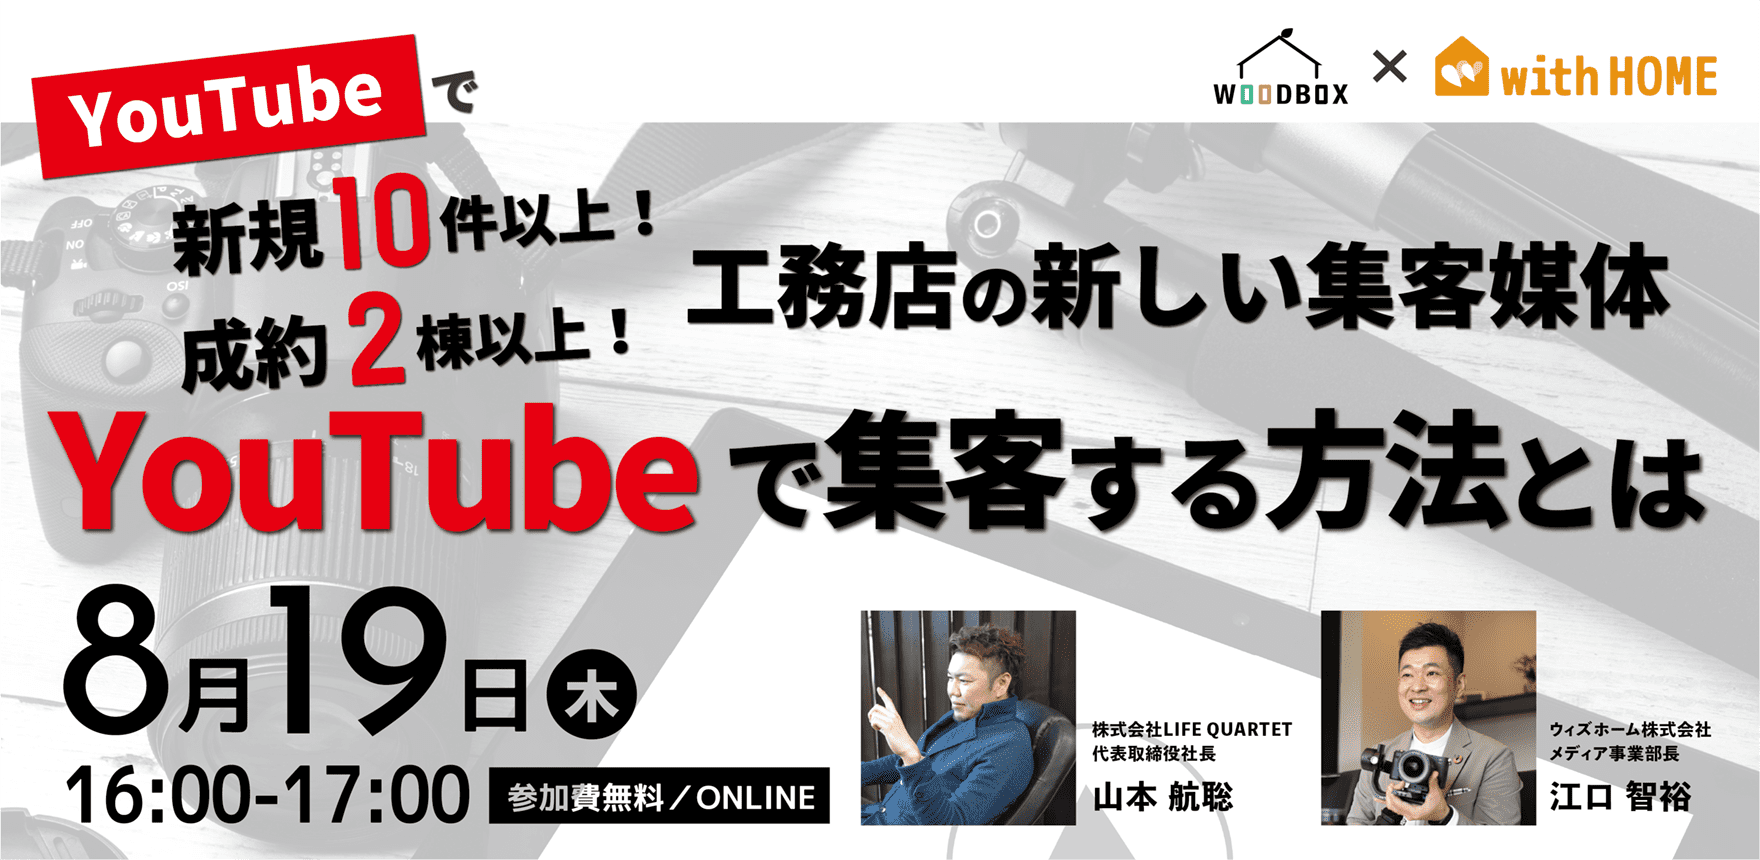 2021.8.19 YouTubeで新規月10件以上!成約月2棟以上! 工務店の新しい集客媒体 YouTubeで集客する方法とは